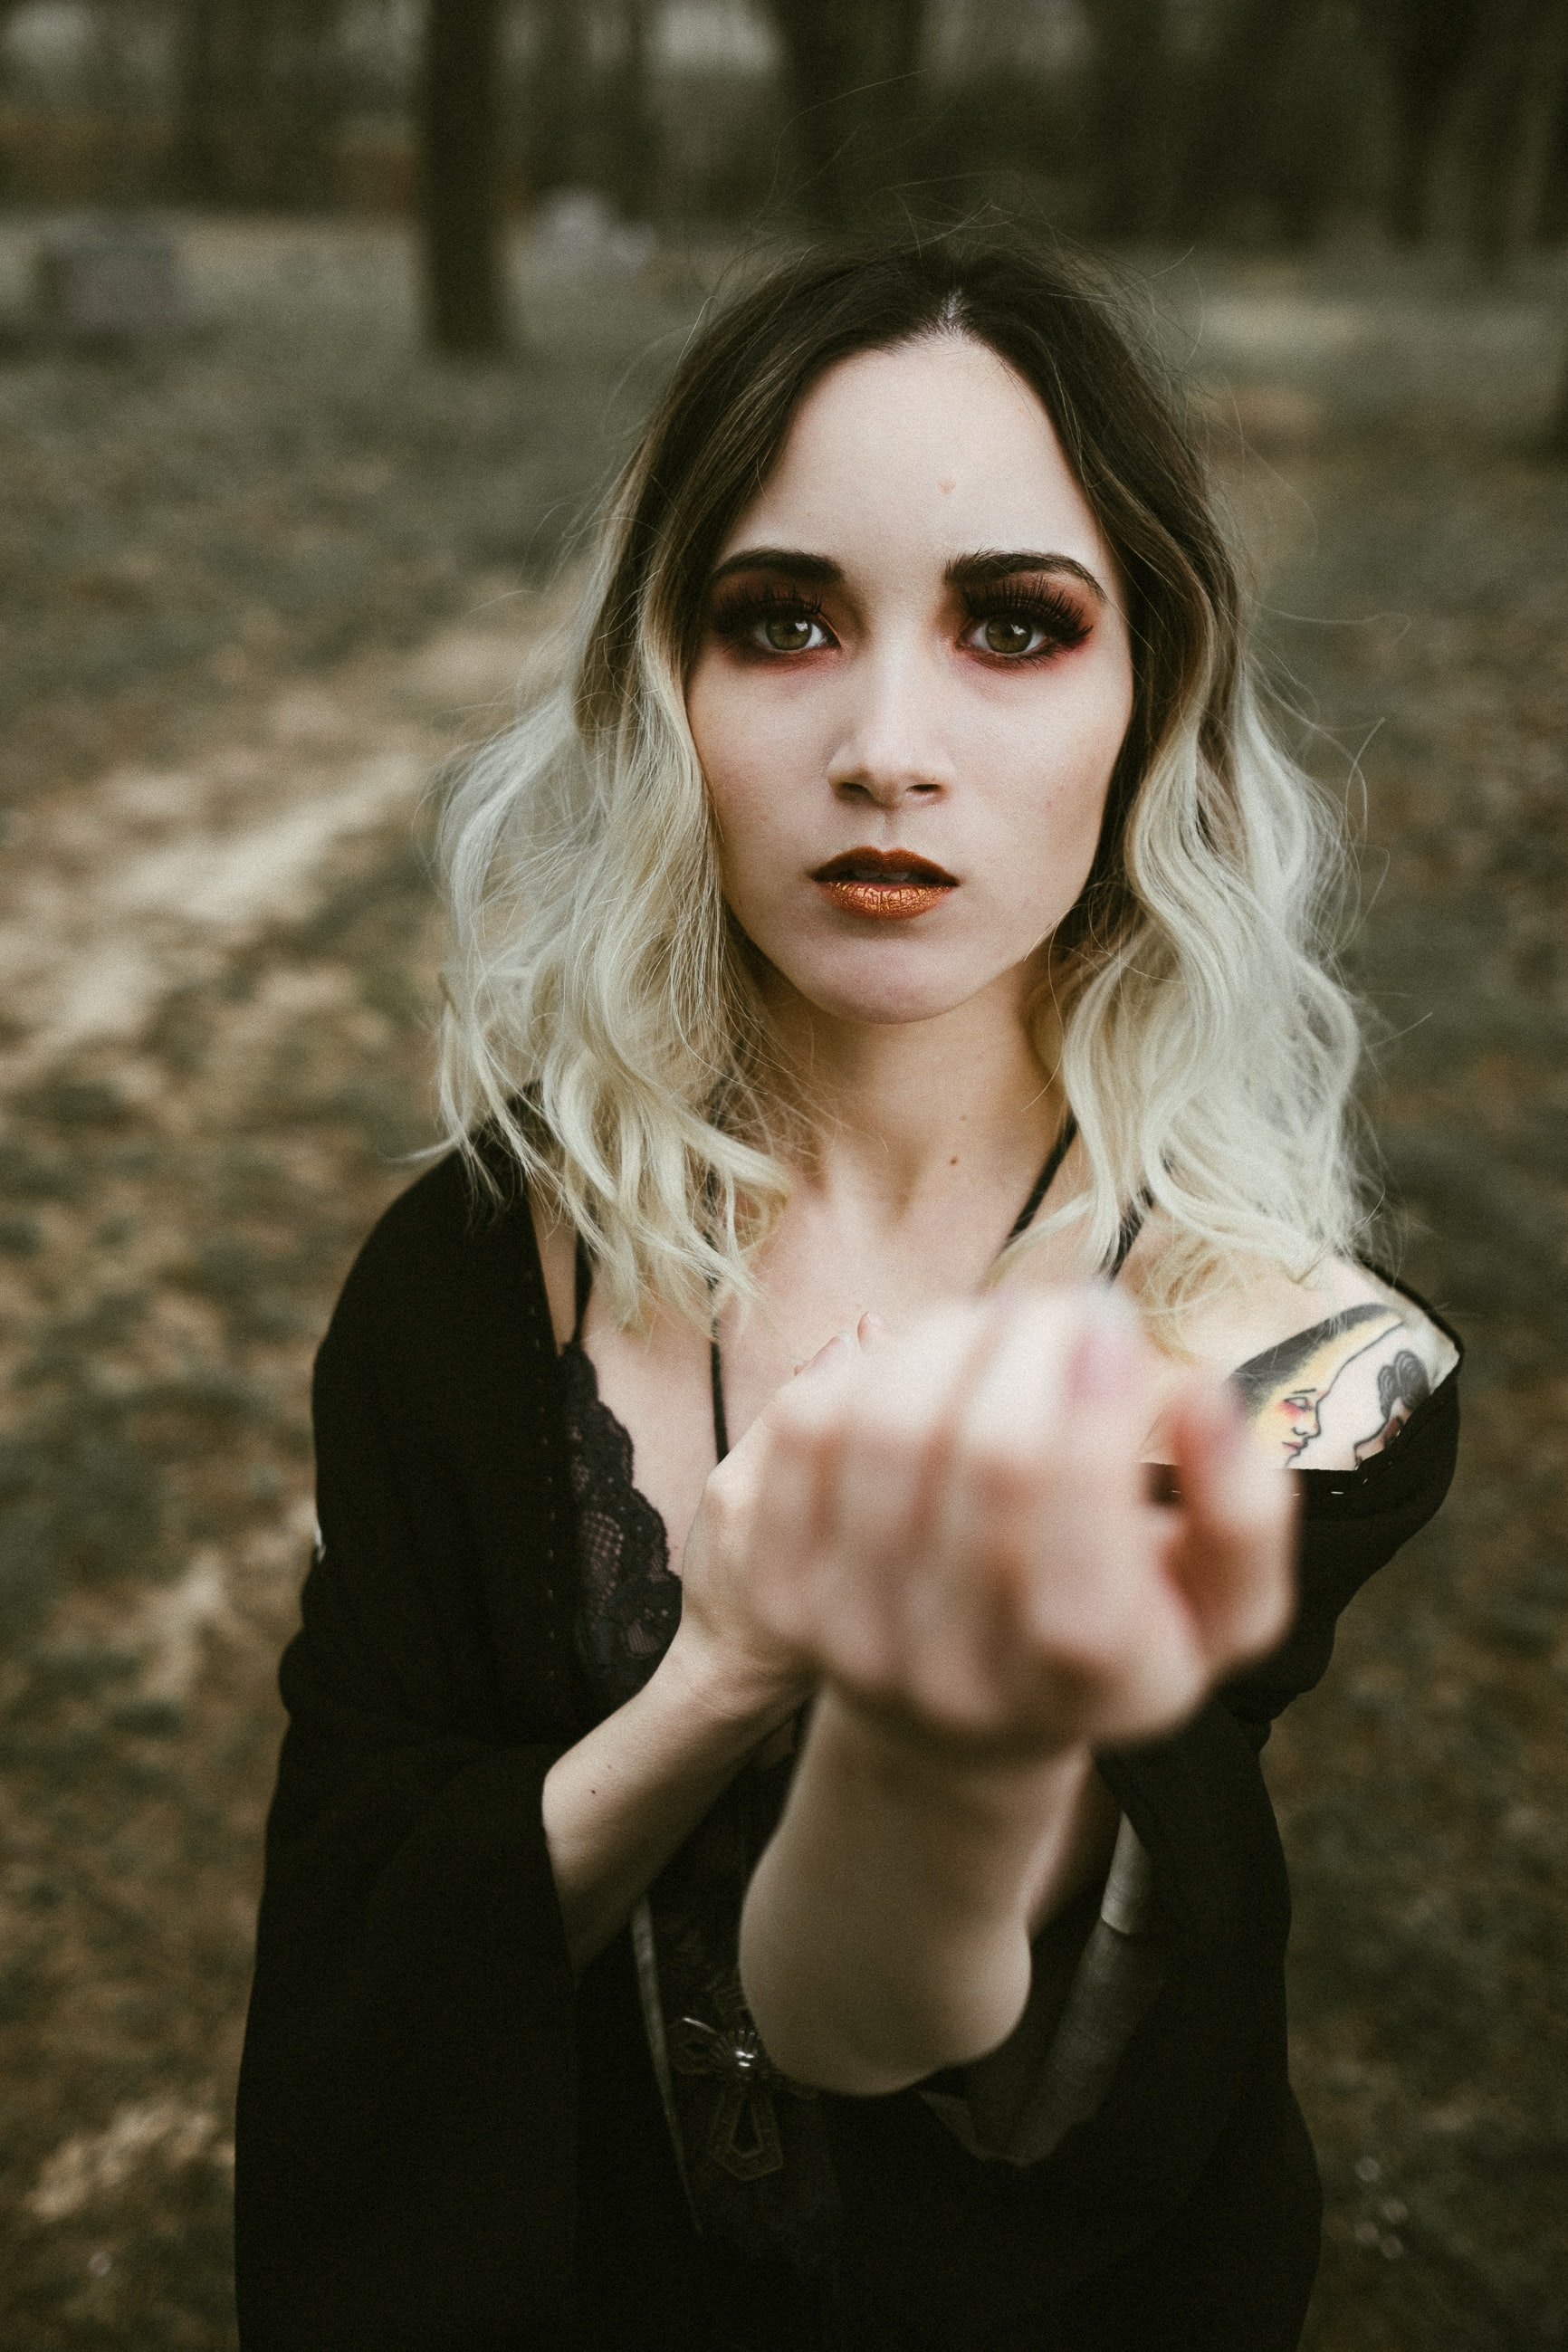 Blonde woman with a tattoo on her arm wearing black in the woods.